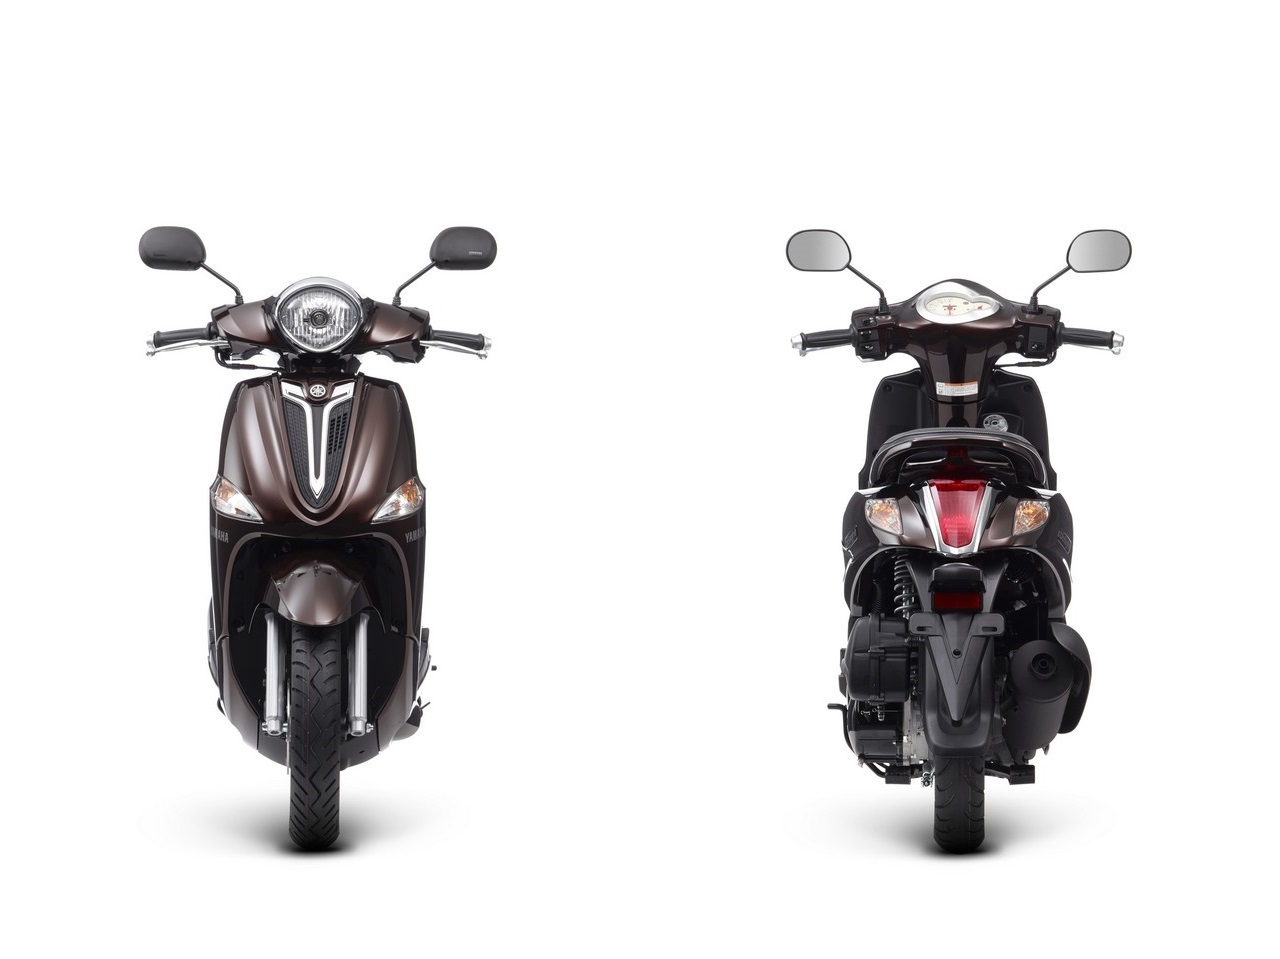 Low Seat Height Bikes In India